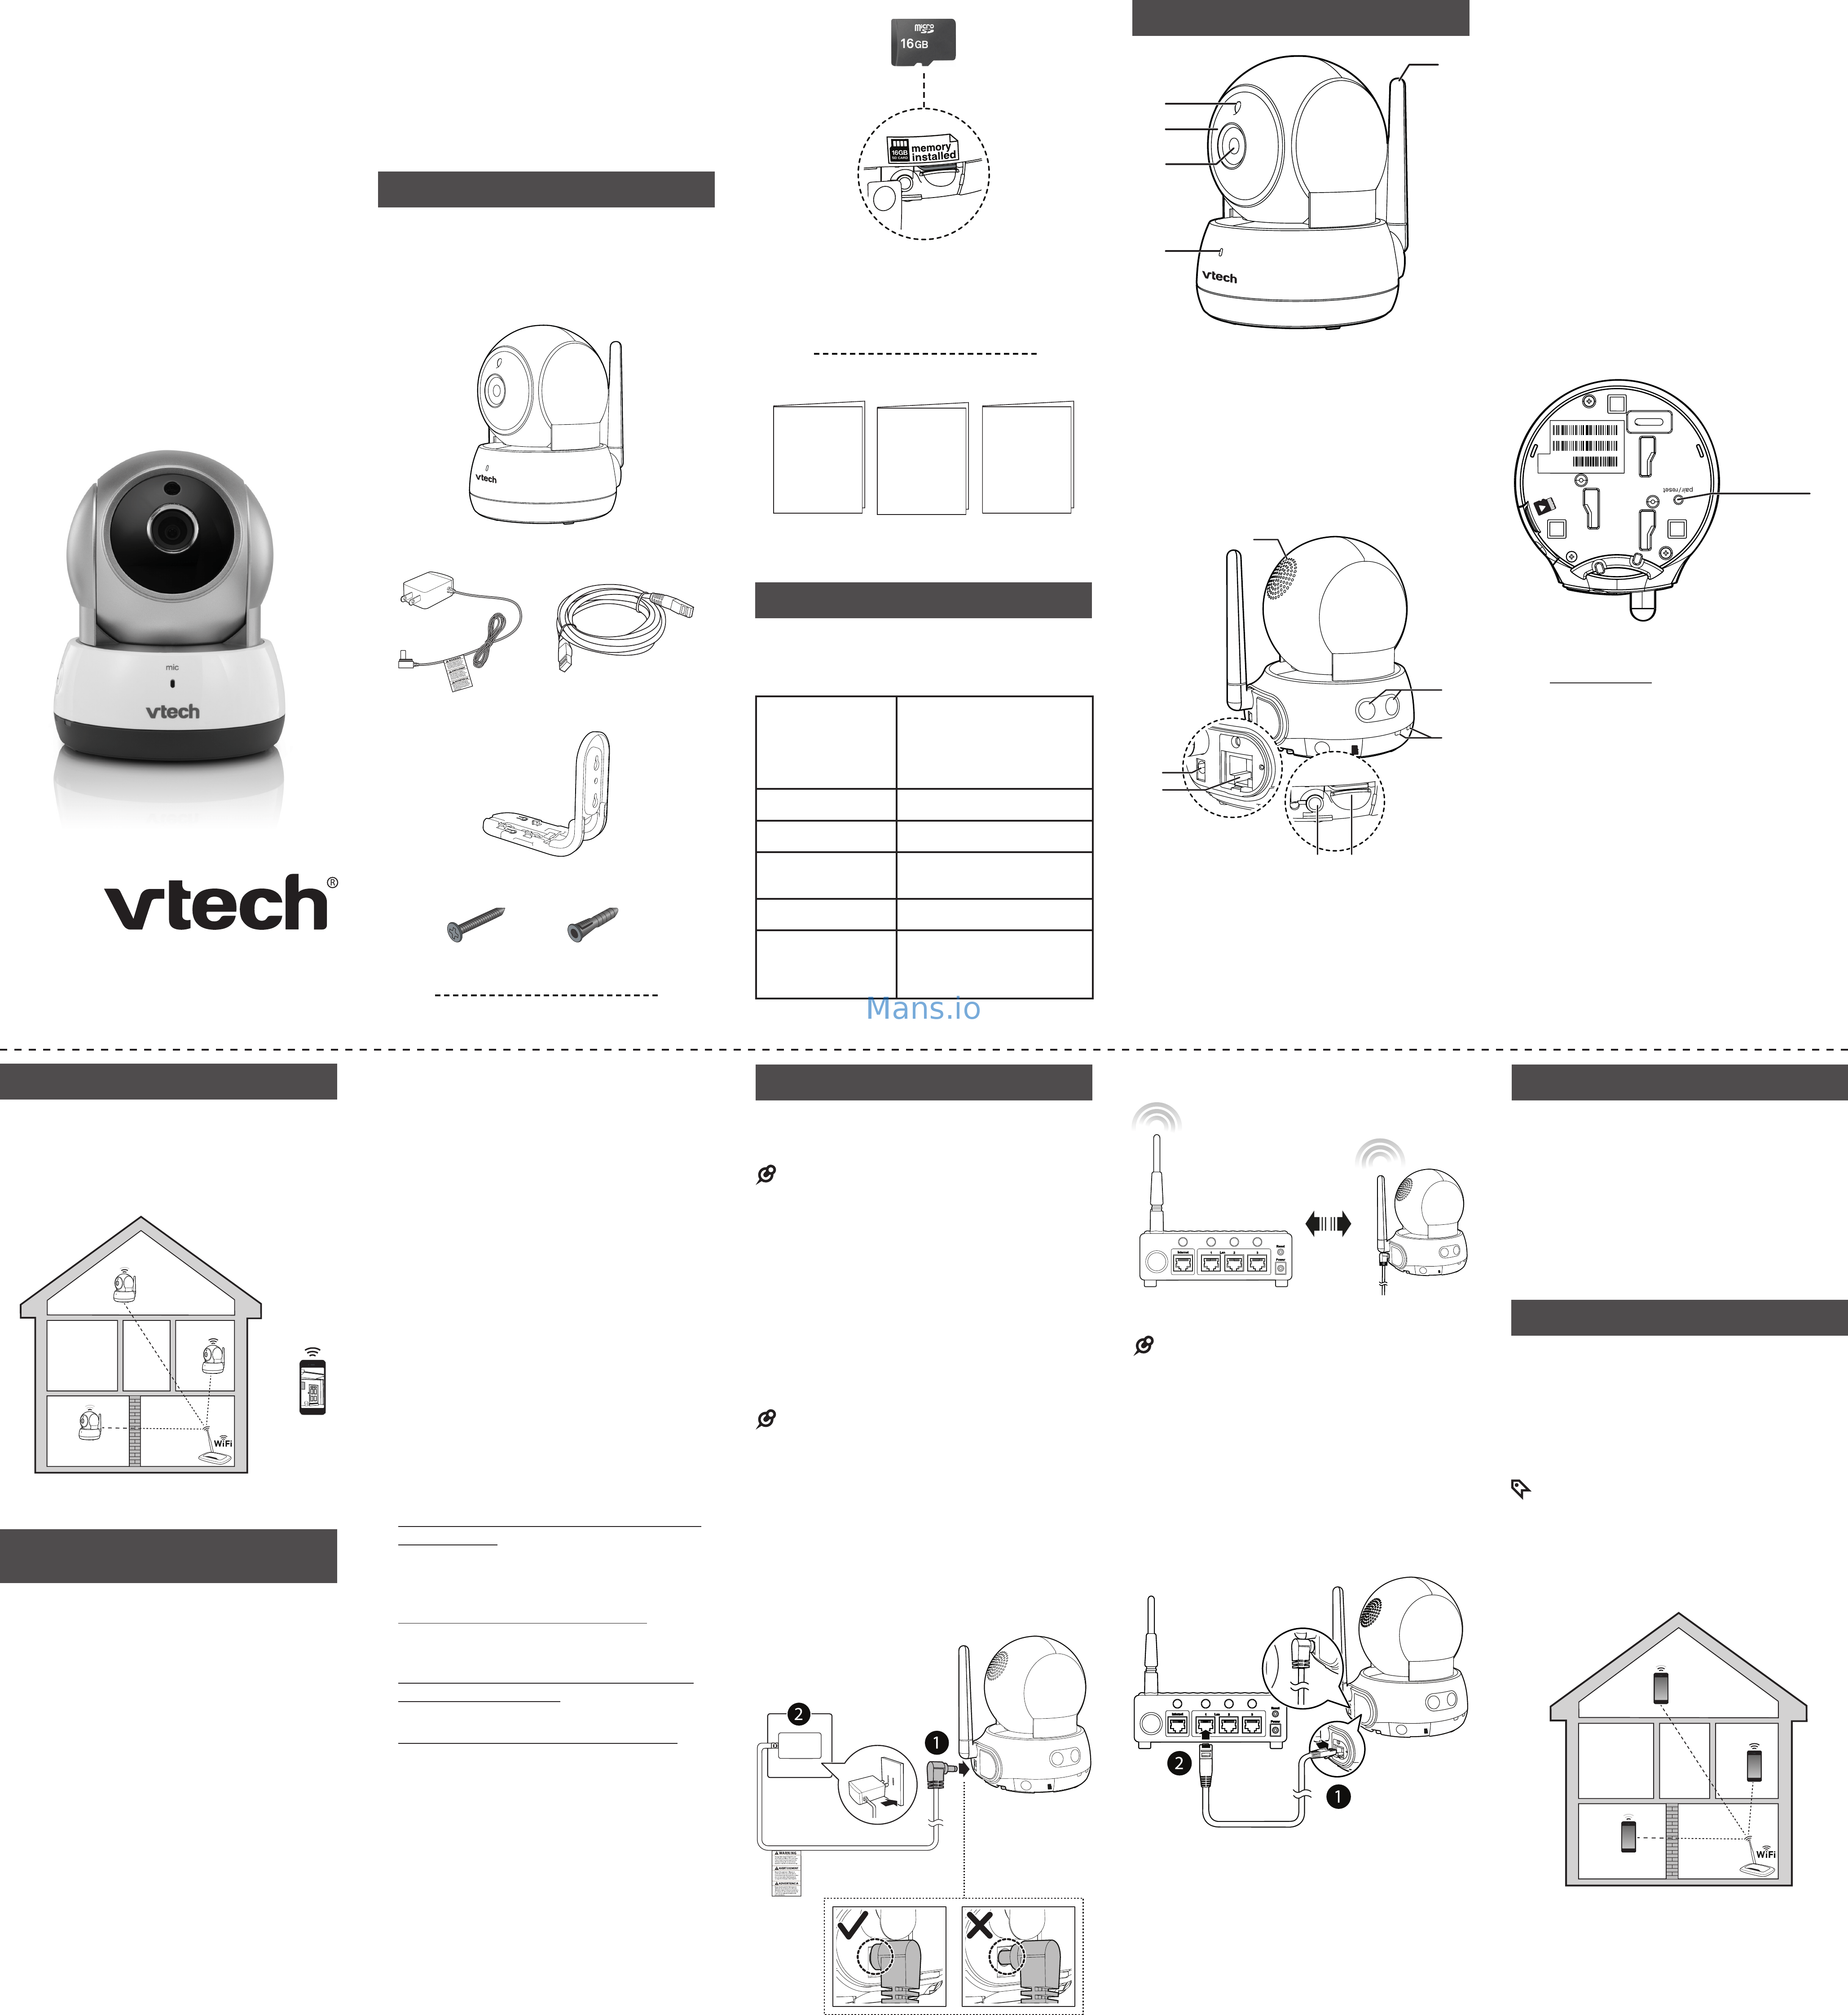 VTech VC931-12 User Manual Page: 1